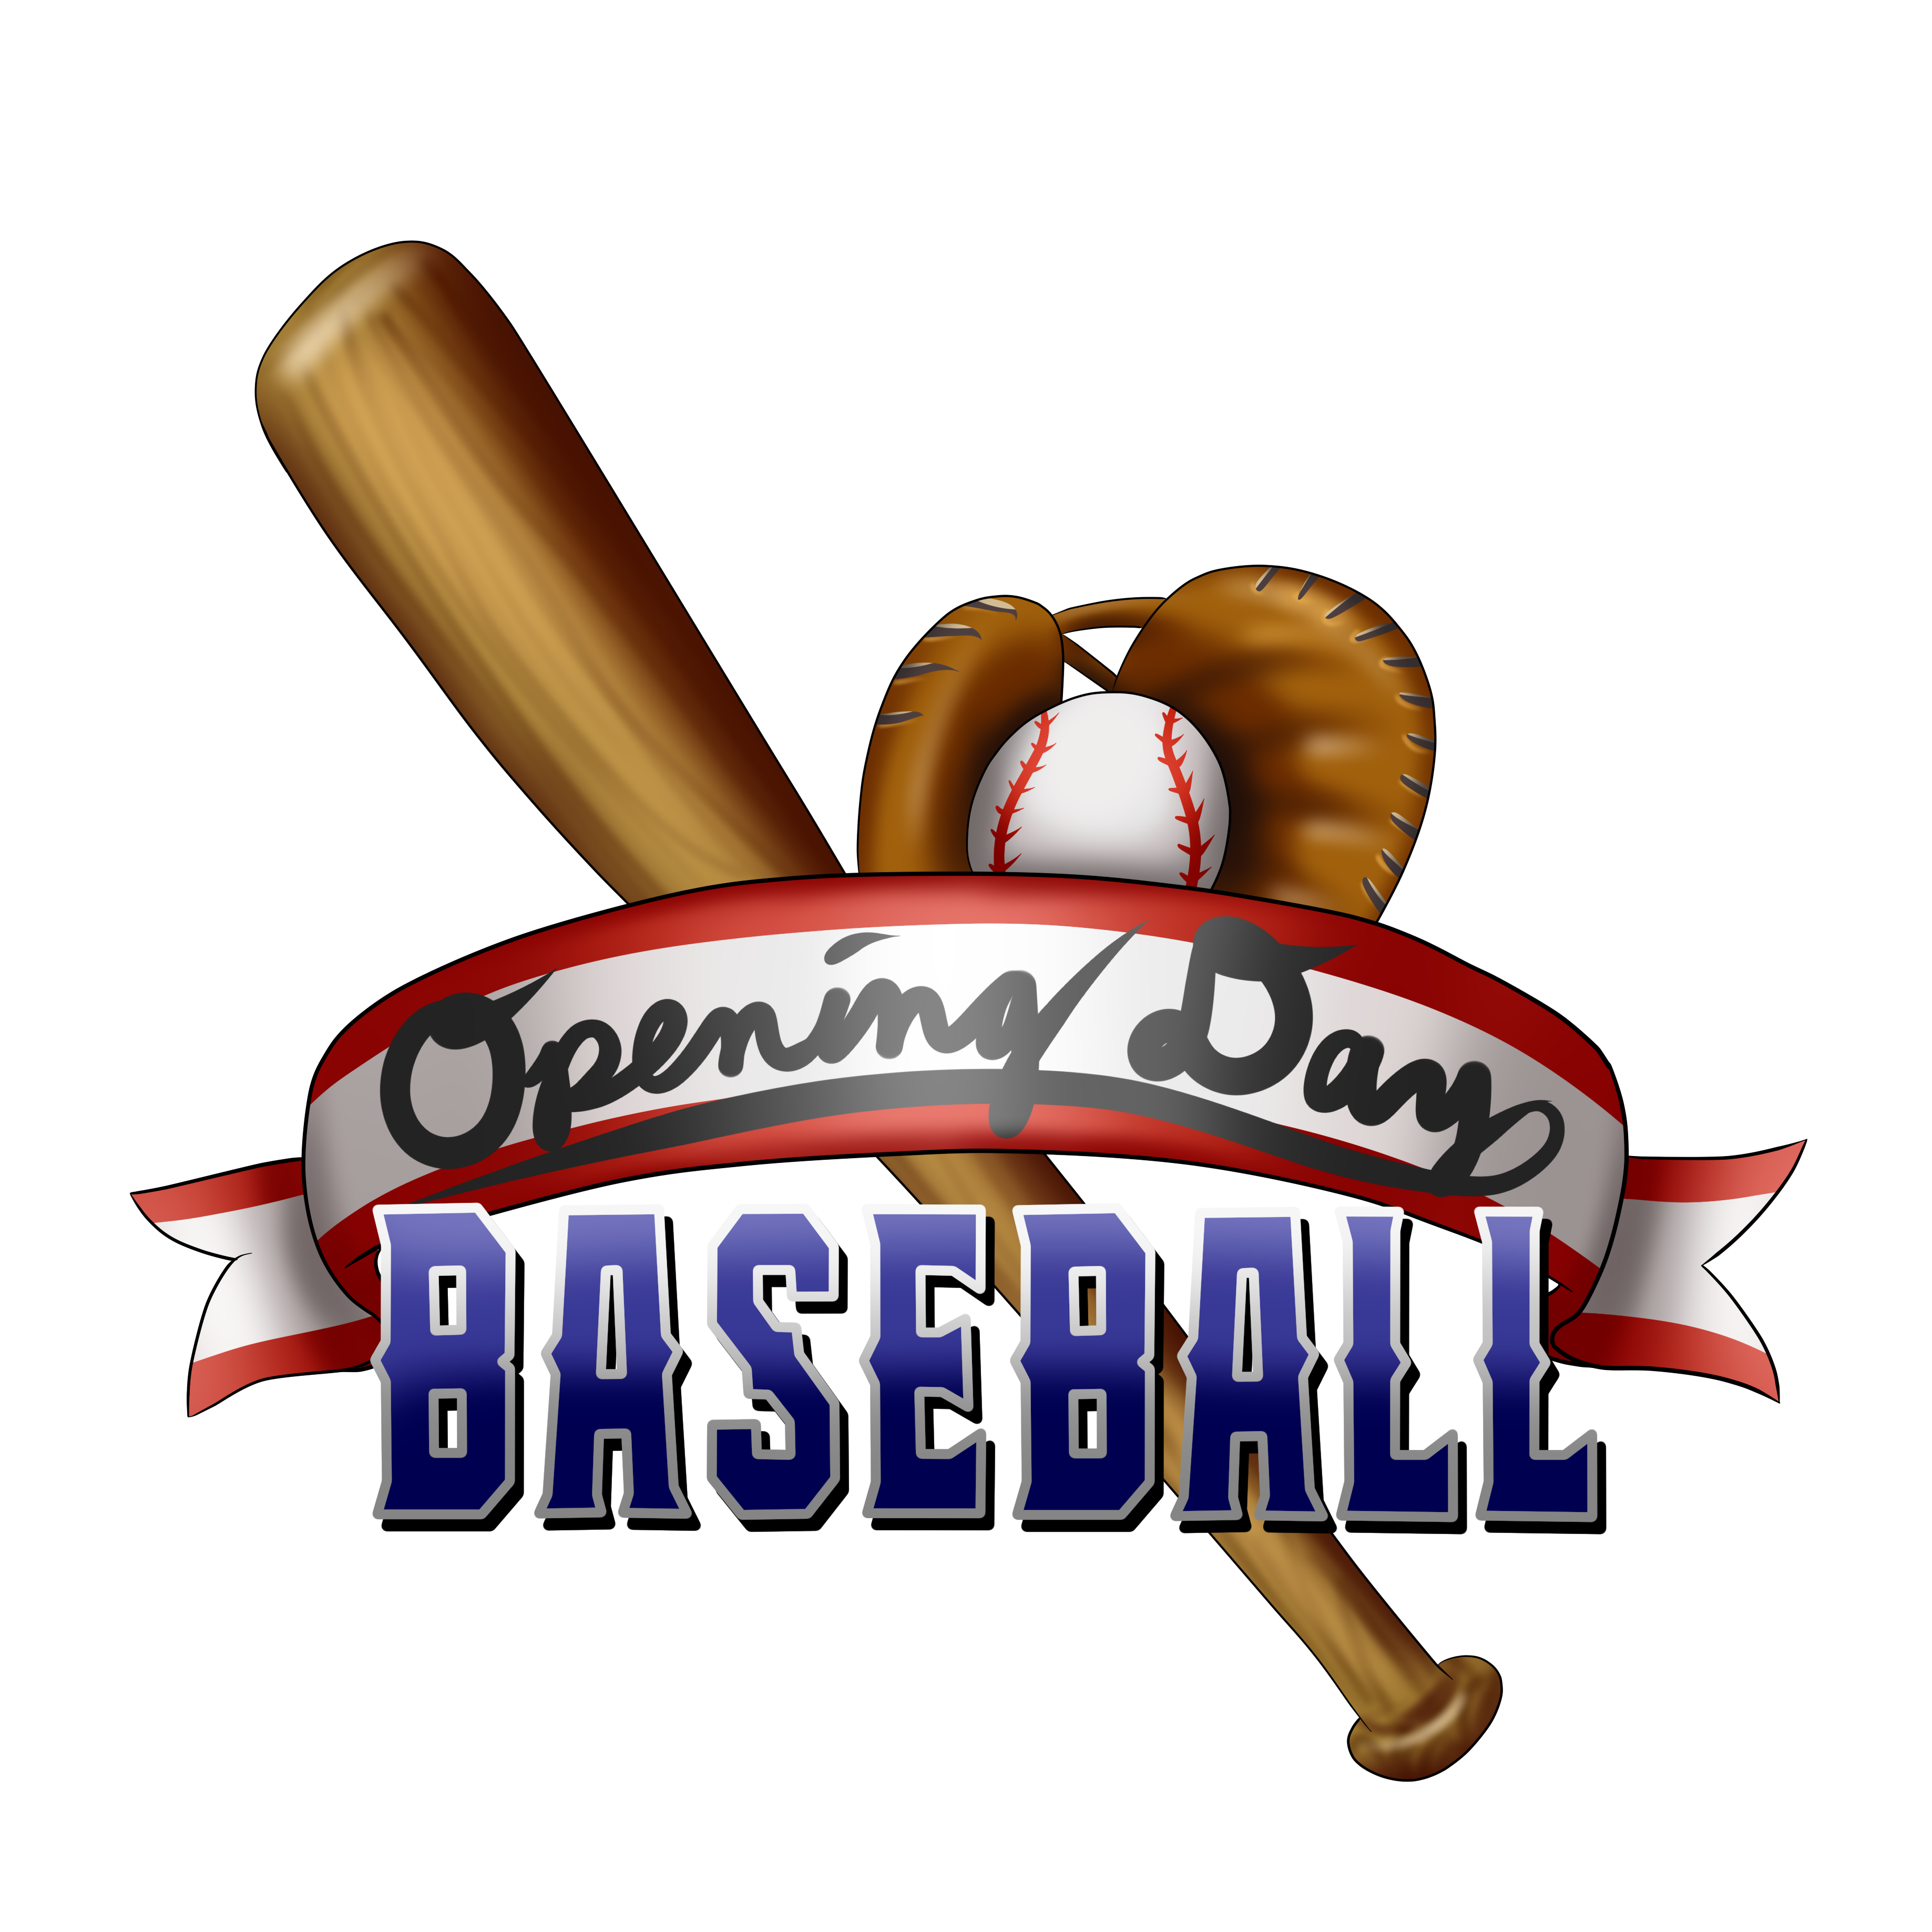 Opening day baseball clipart svg free stock Opening Day Baseball by D-Train1988 svg free stock